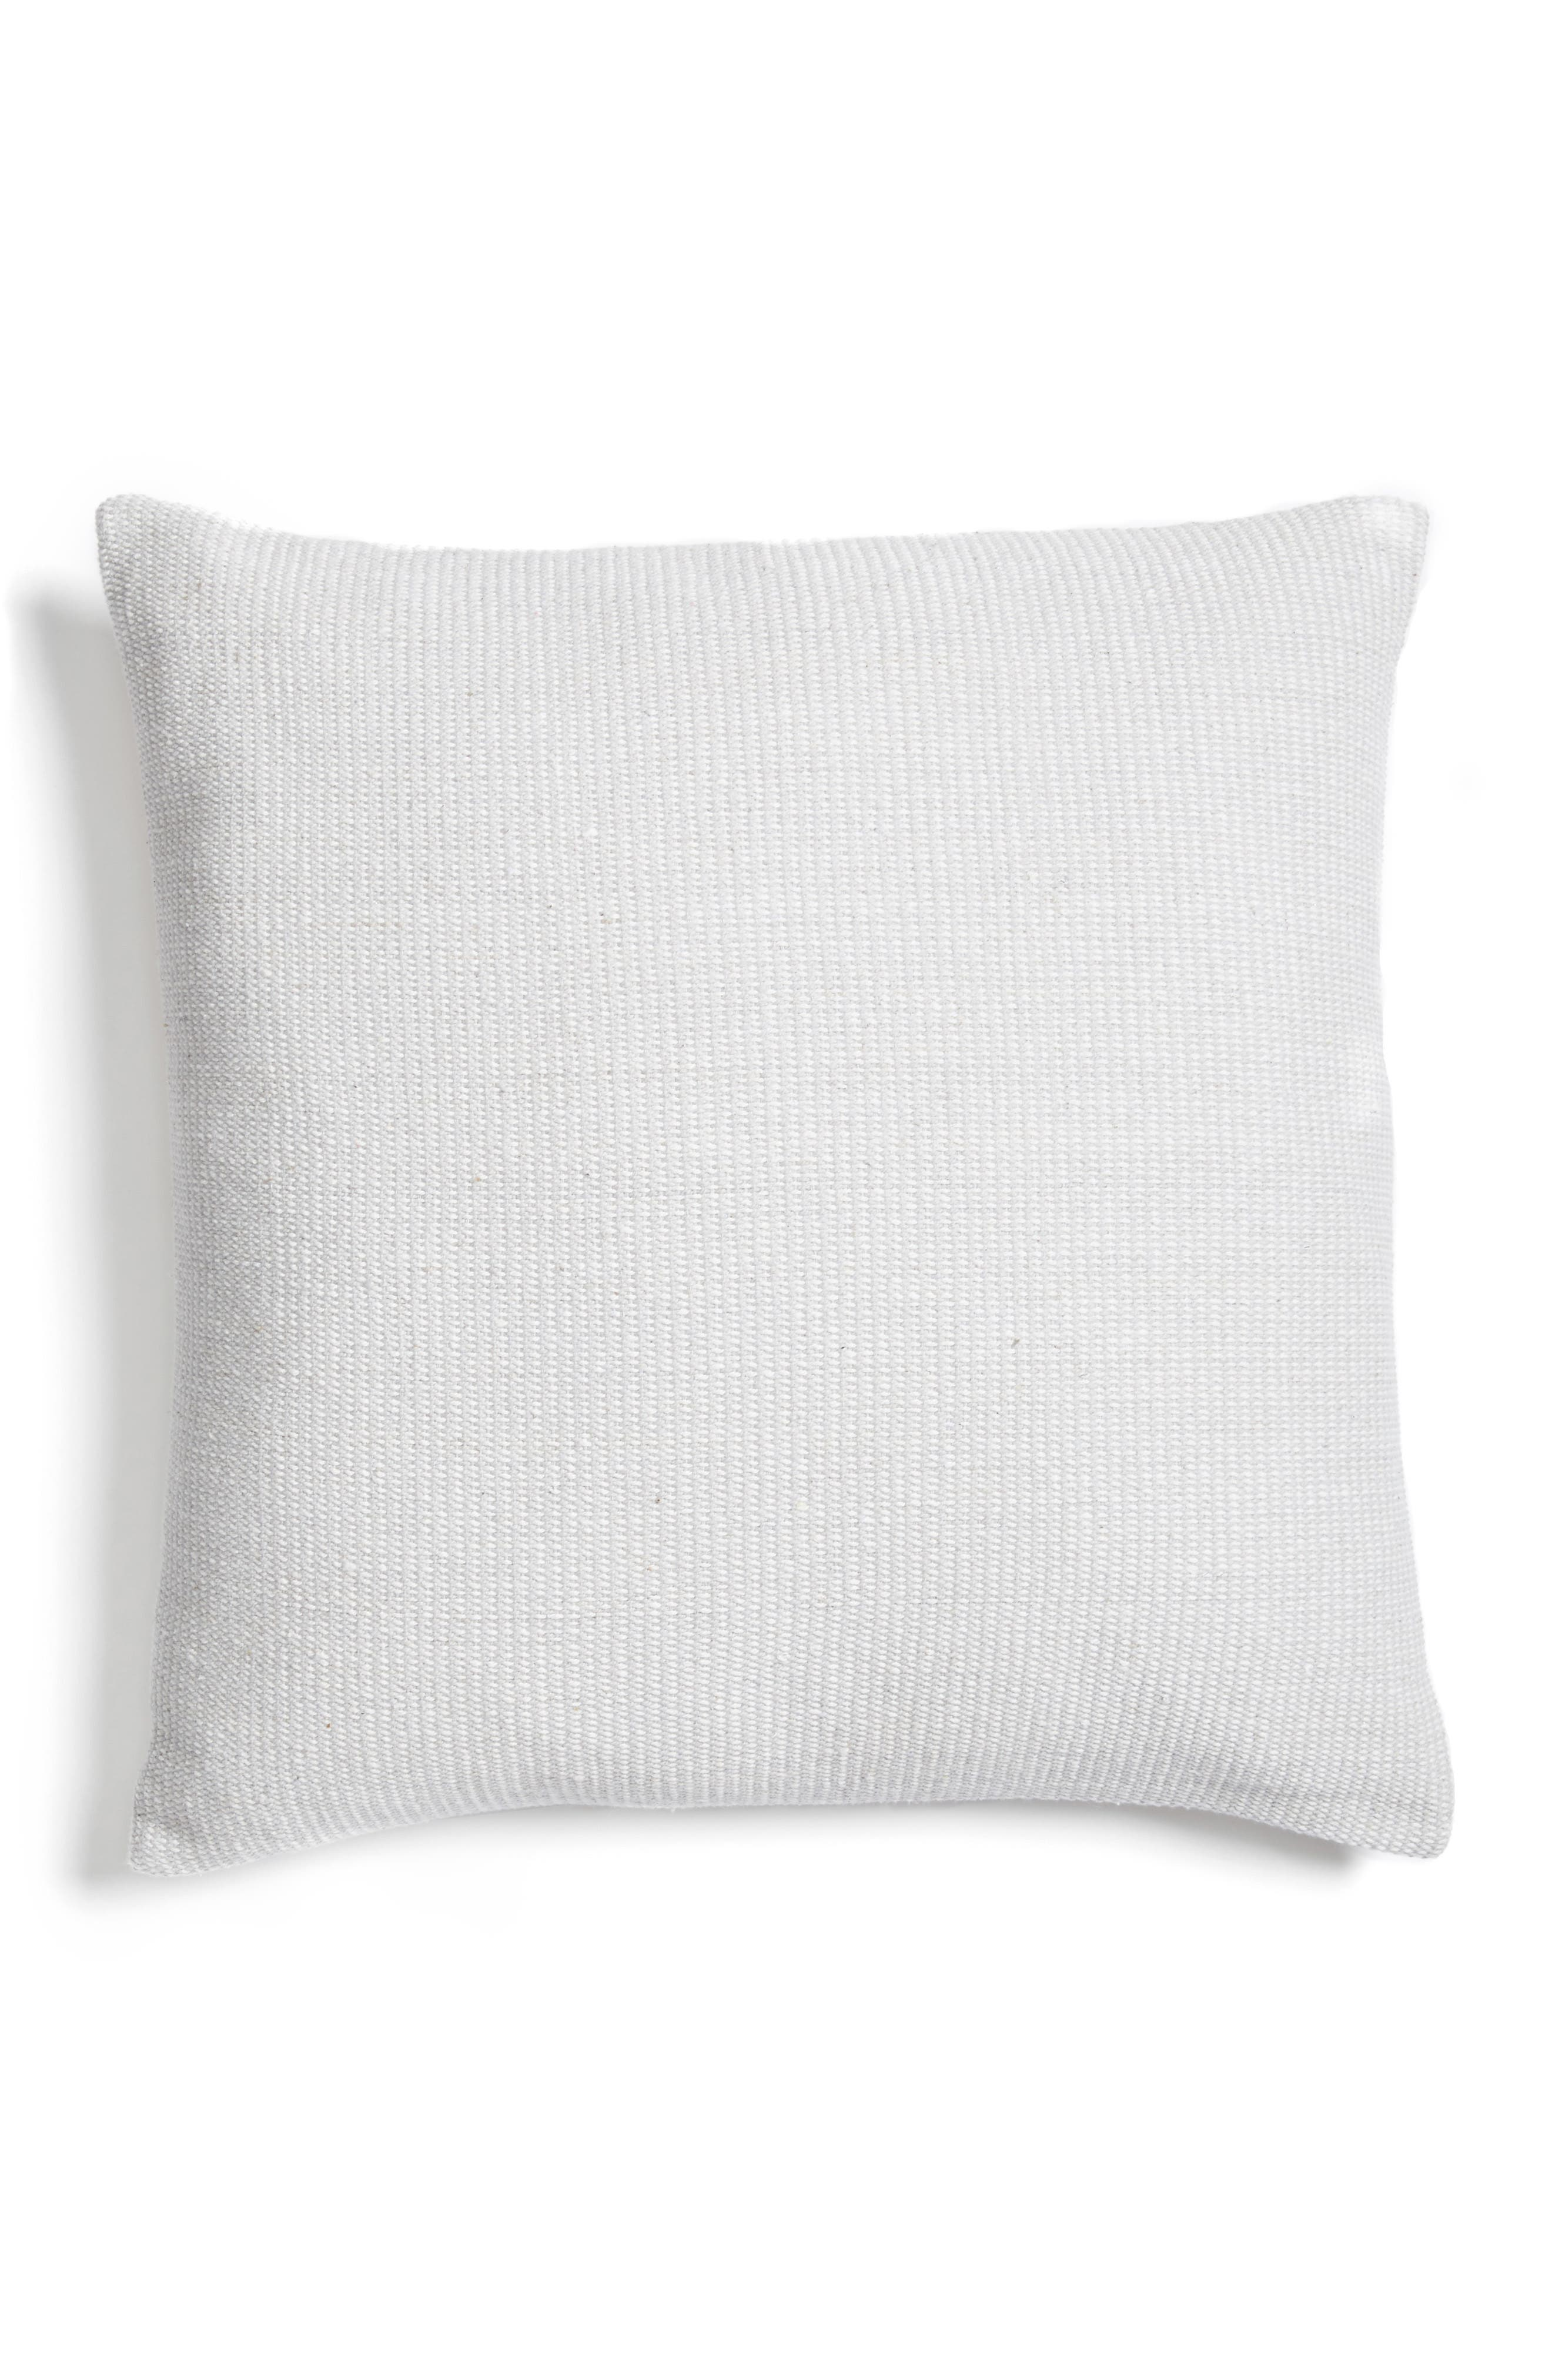 Structure Pillow,                         Main,                         color, White/ Grey